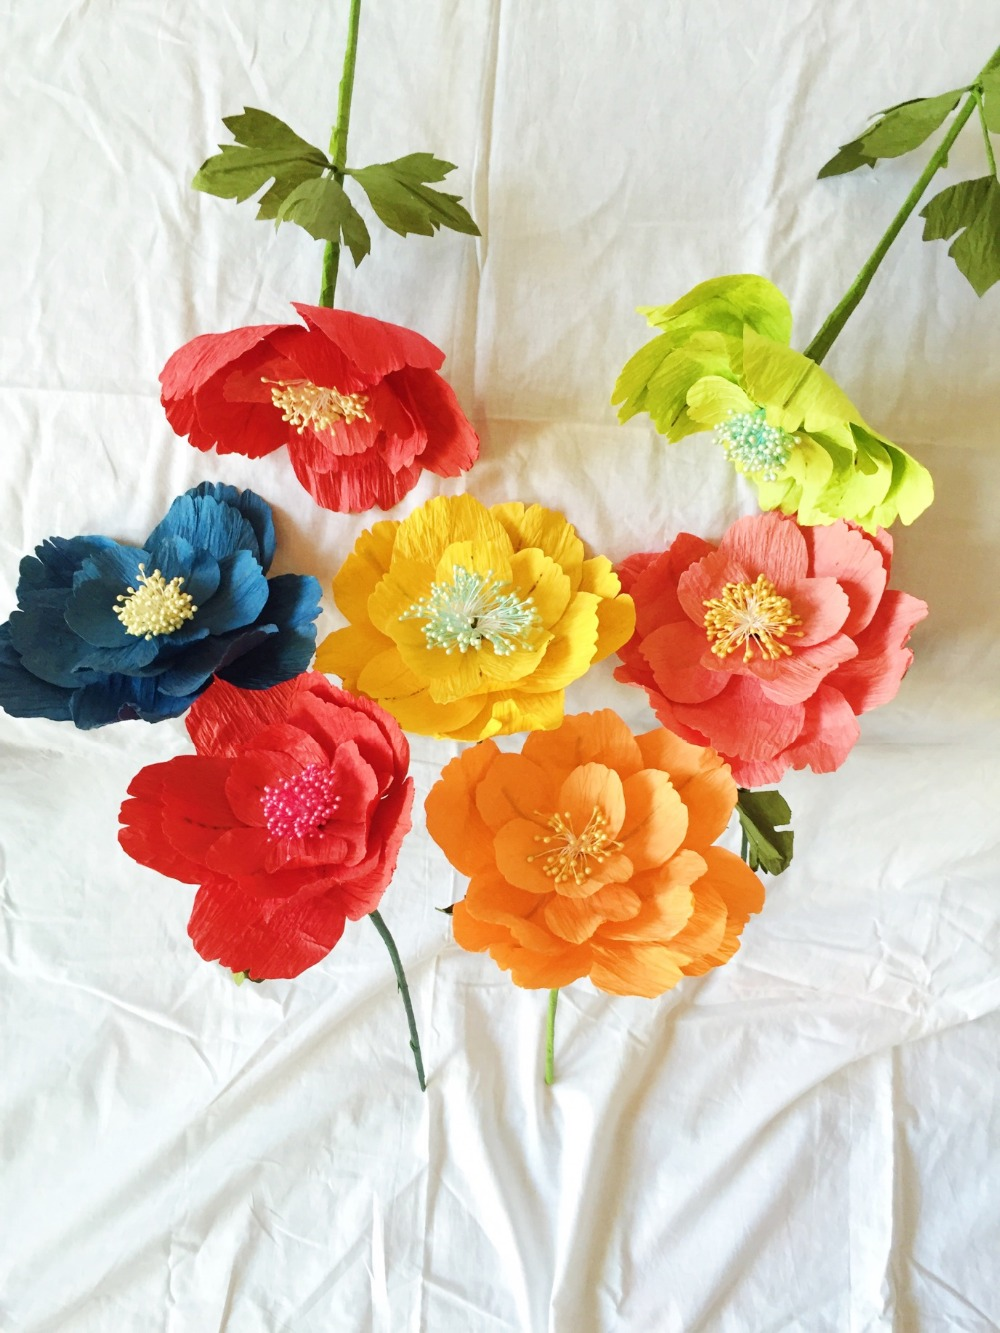 Diy pot decorations paper flowers promotion shop for promotional diy paper vine peony wedding holiday family gatherings decoration decorative potted home environment dhlflorist Choice Image